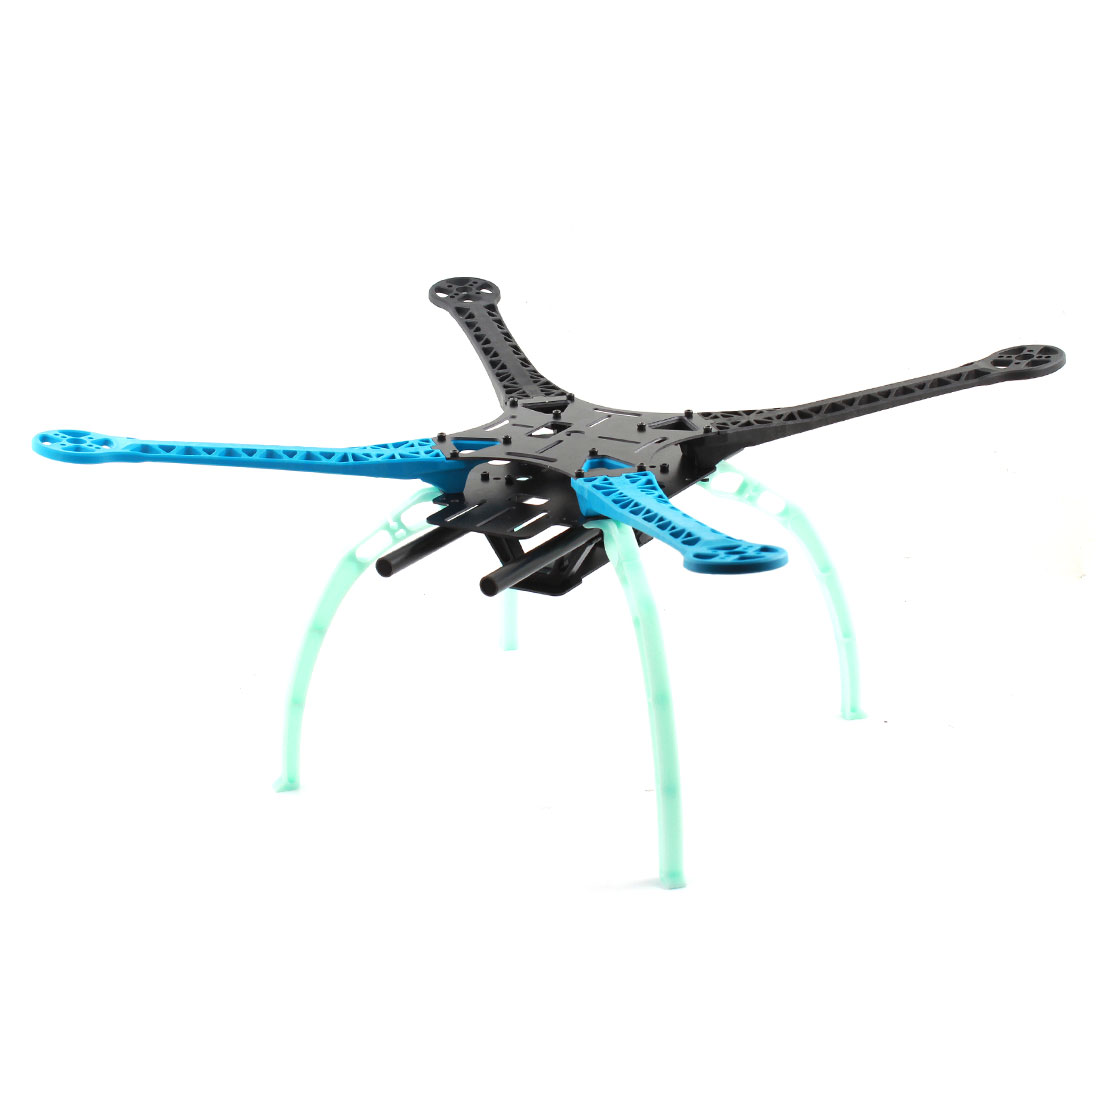 S500 Multi-Rotor Quadcopter FPV Photography Air Frame Kit for FPV Gopro Hero Gimbal Camera